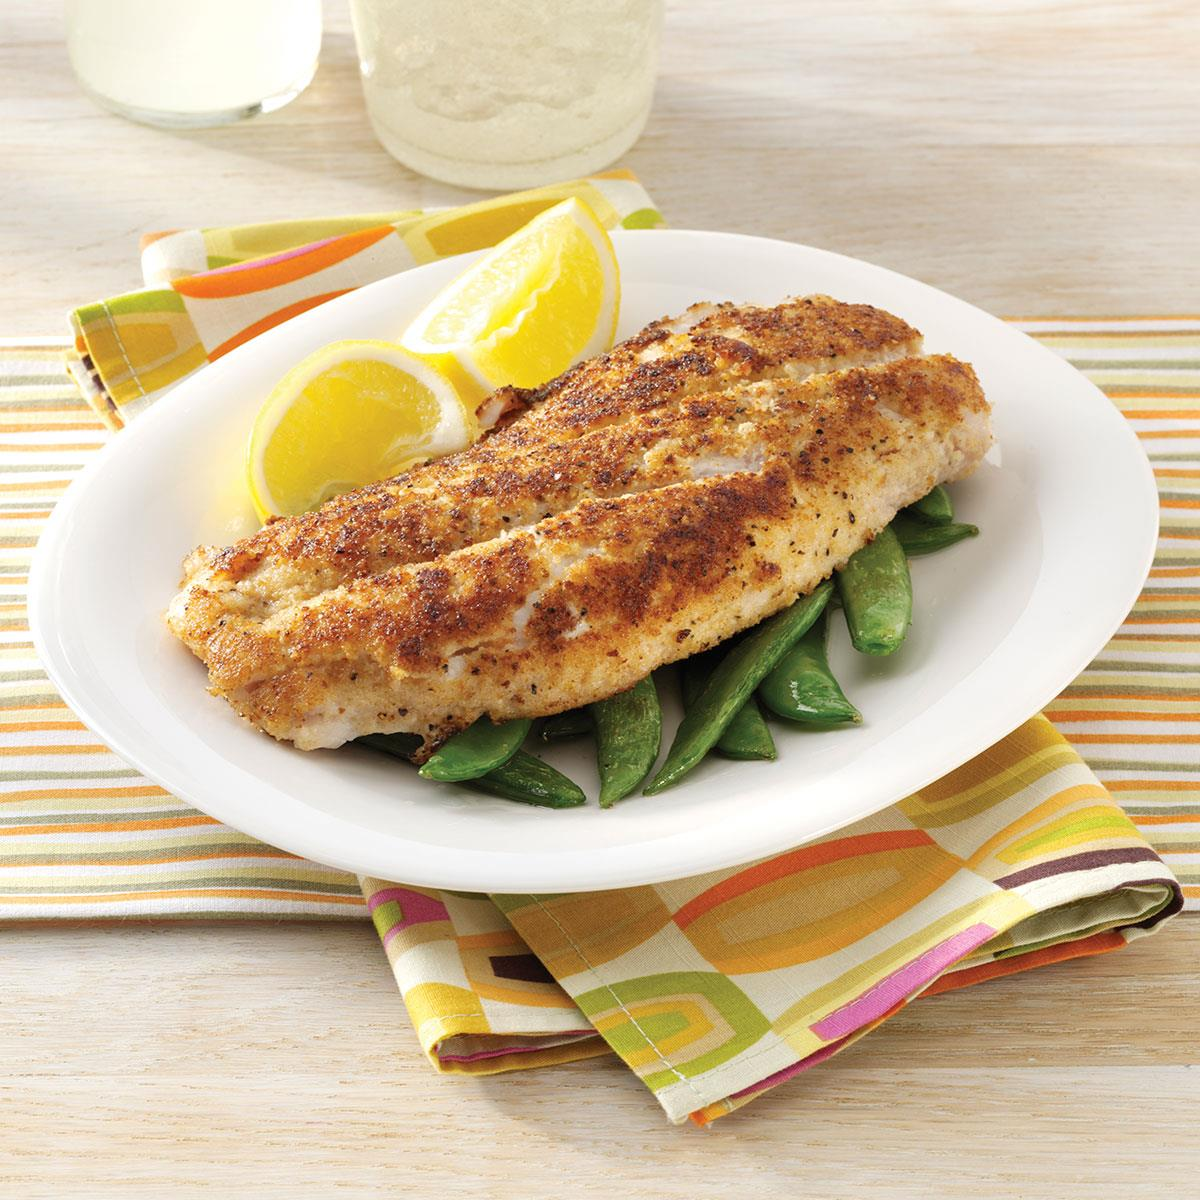 Crumb coated red snapper recipe taste of home for Snapper fish recipes